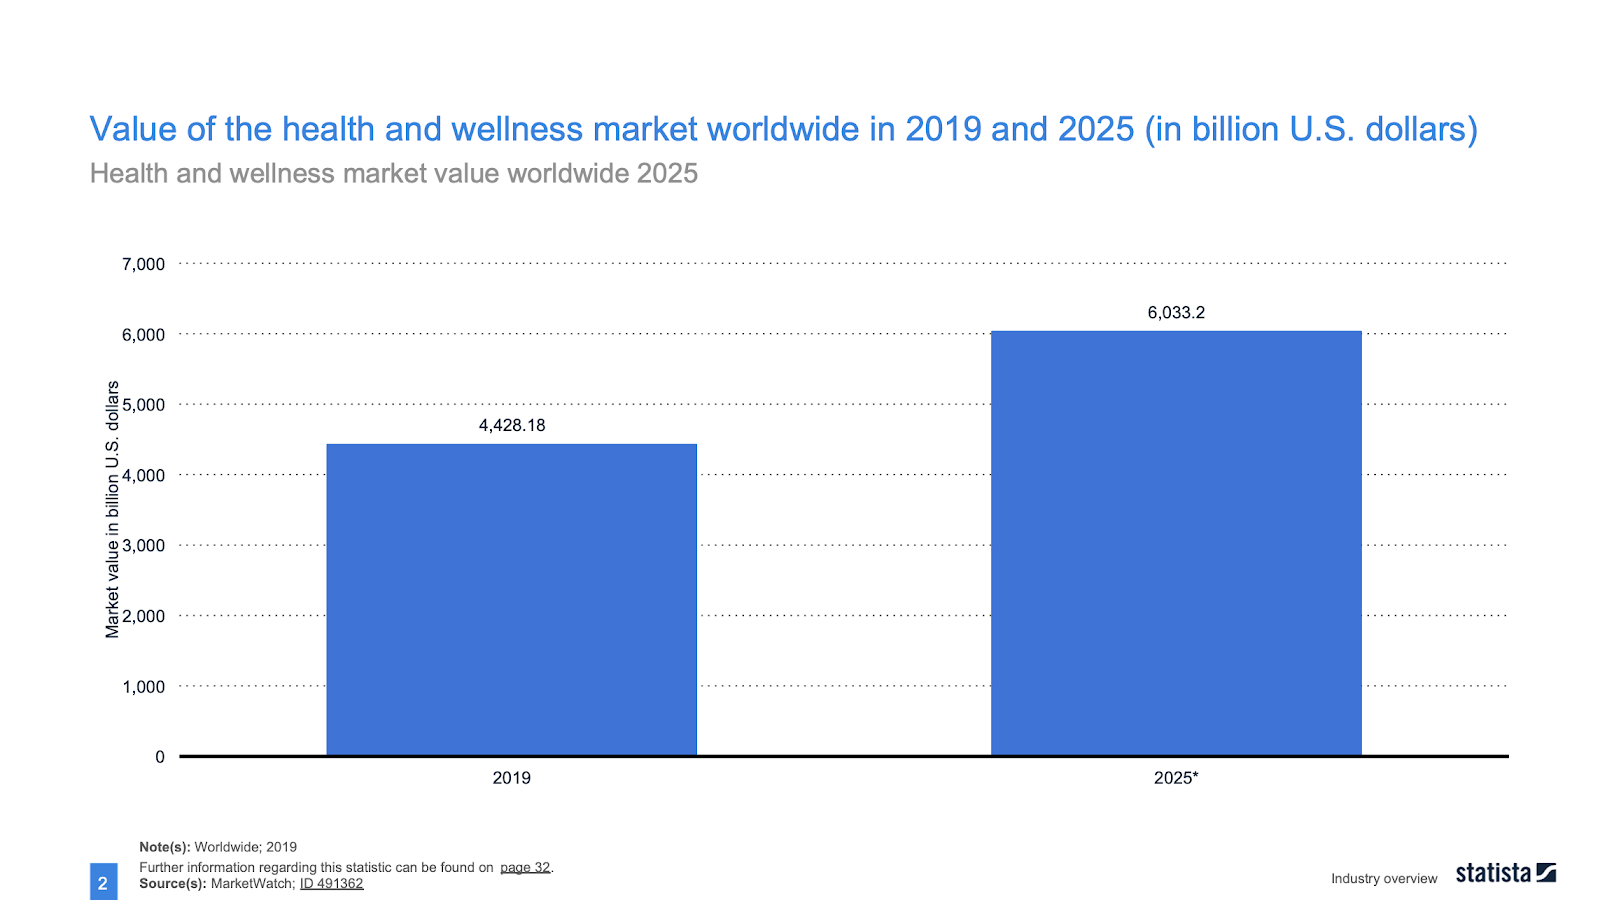 Graph depicting value of the health and wellness market worldwide in 2019 and 2025 in billion US dollars